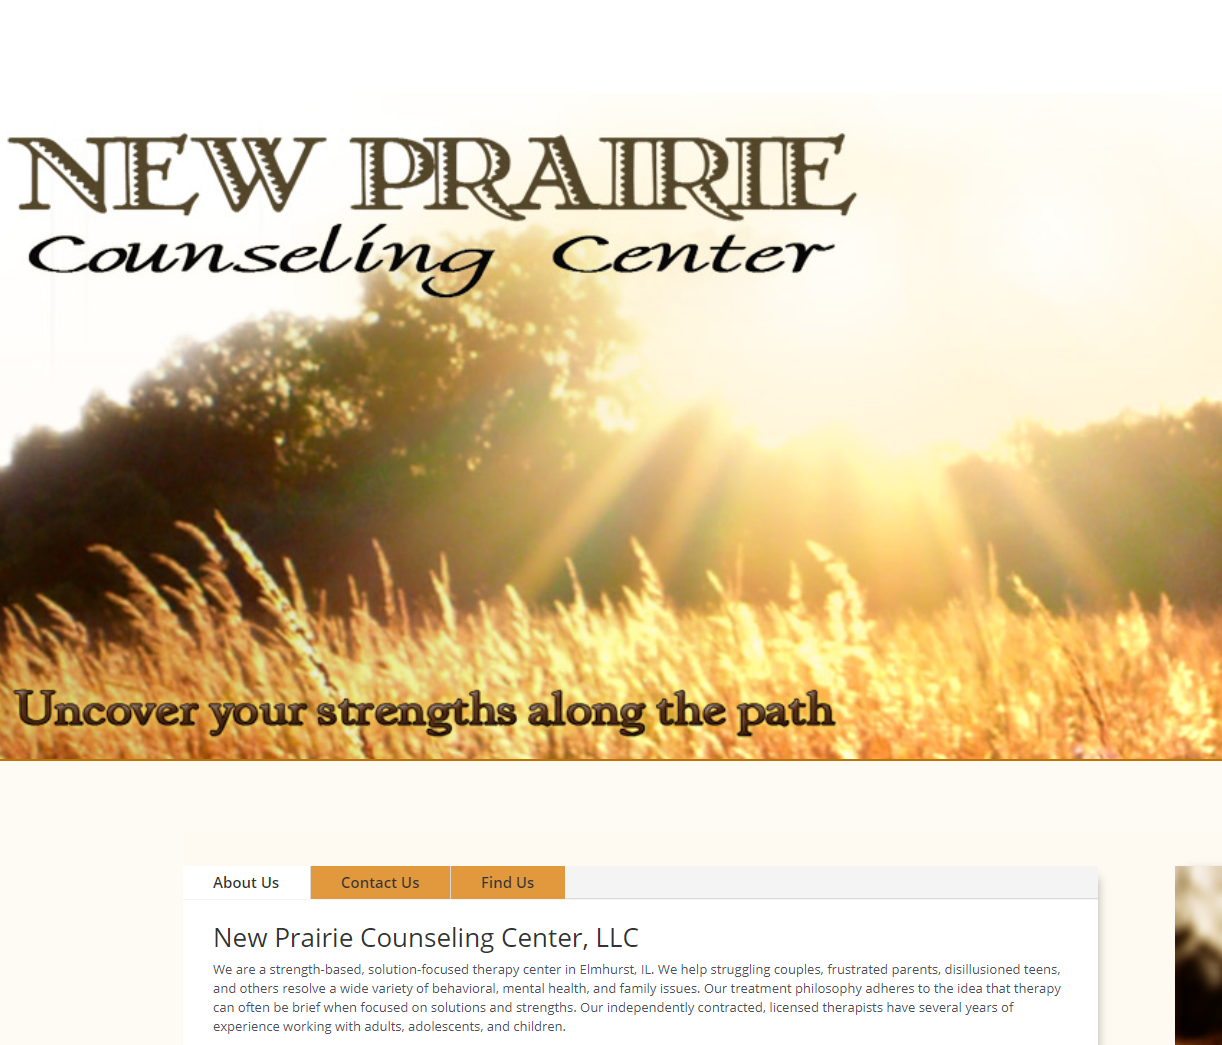 New Prairie Counseling Center